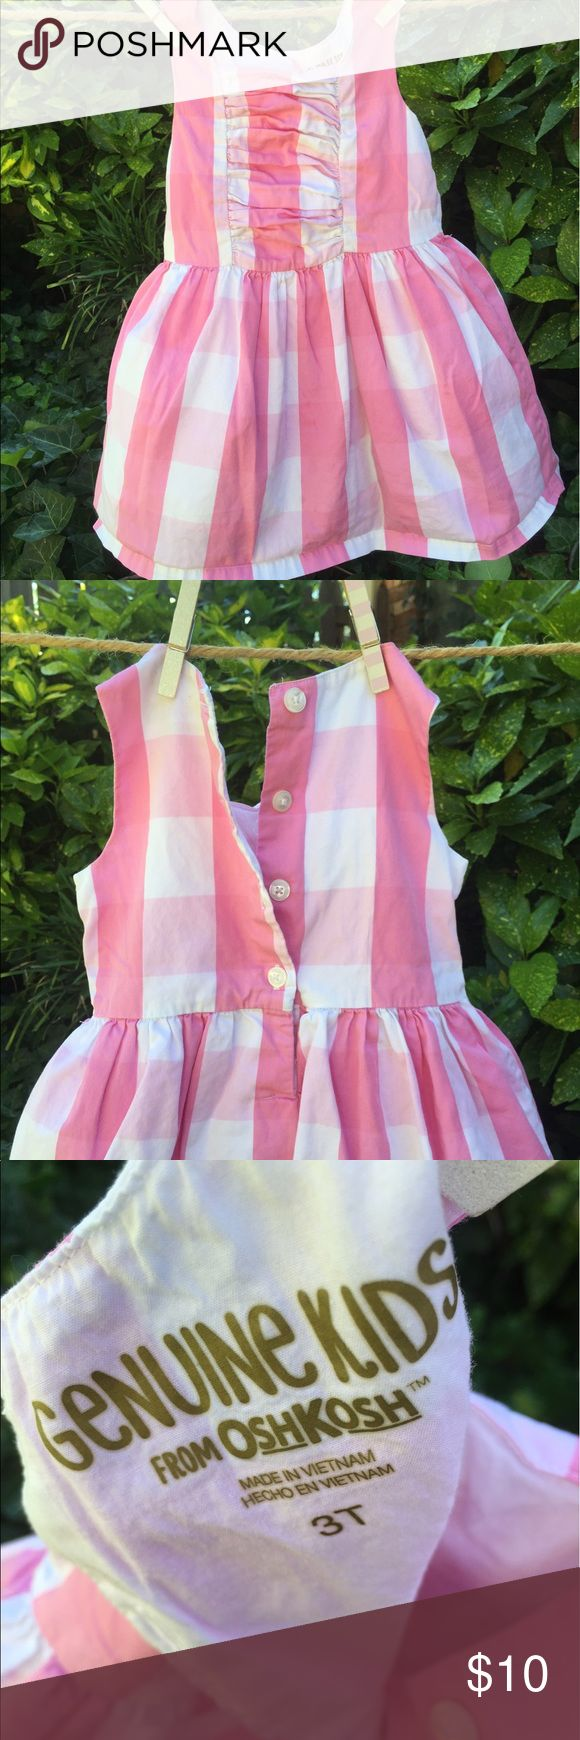 Casual cute pink and white plaid dress Great dress to send her out looking adorable but feeling comfy and ready to play. Great springtime / summer dress for play dates, BBQs, or any casual dressy event. Osh Kosh Dresses Casual